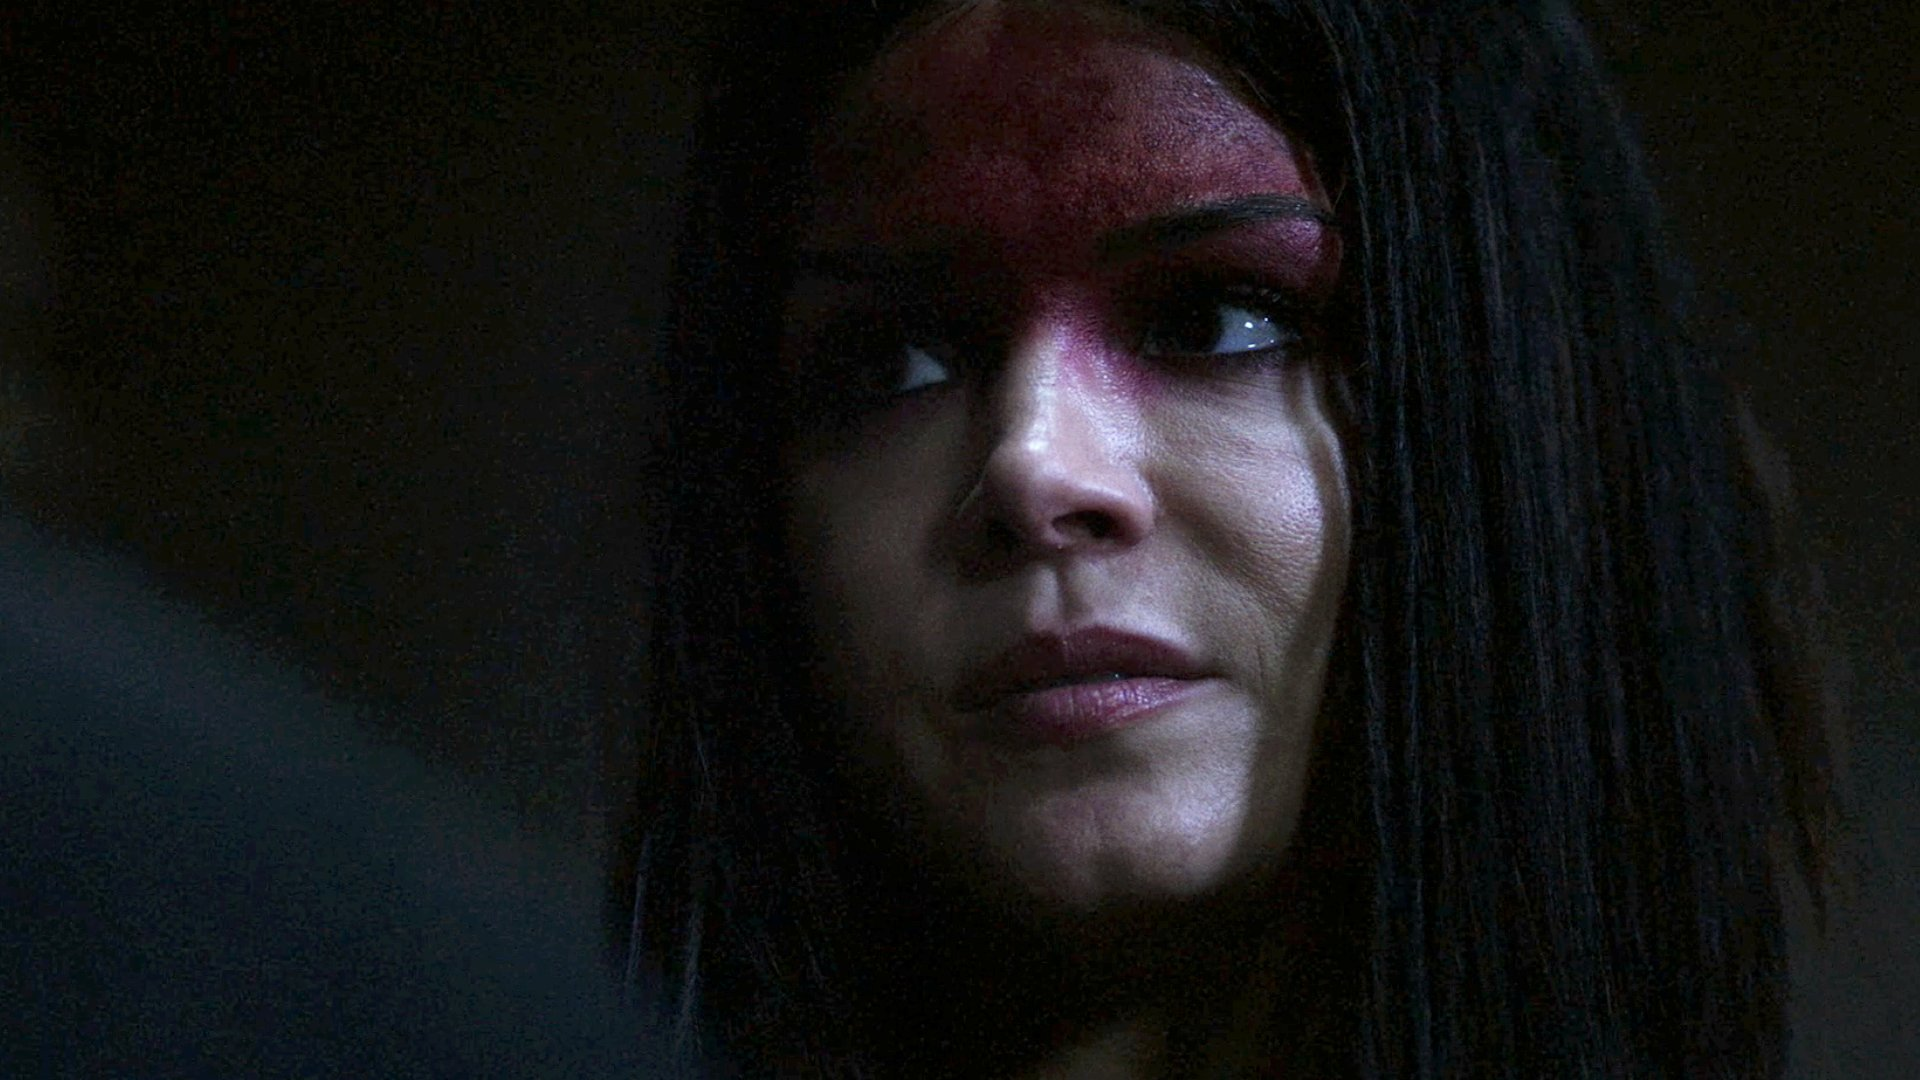 Pandora's box is about to be open. #The100 is new TONIGHT at 9/8c on The CW! https://t.co/Q0Z5GbwXkc